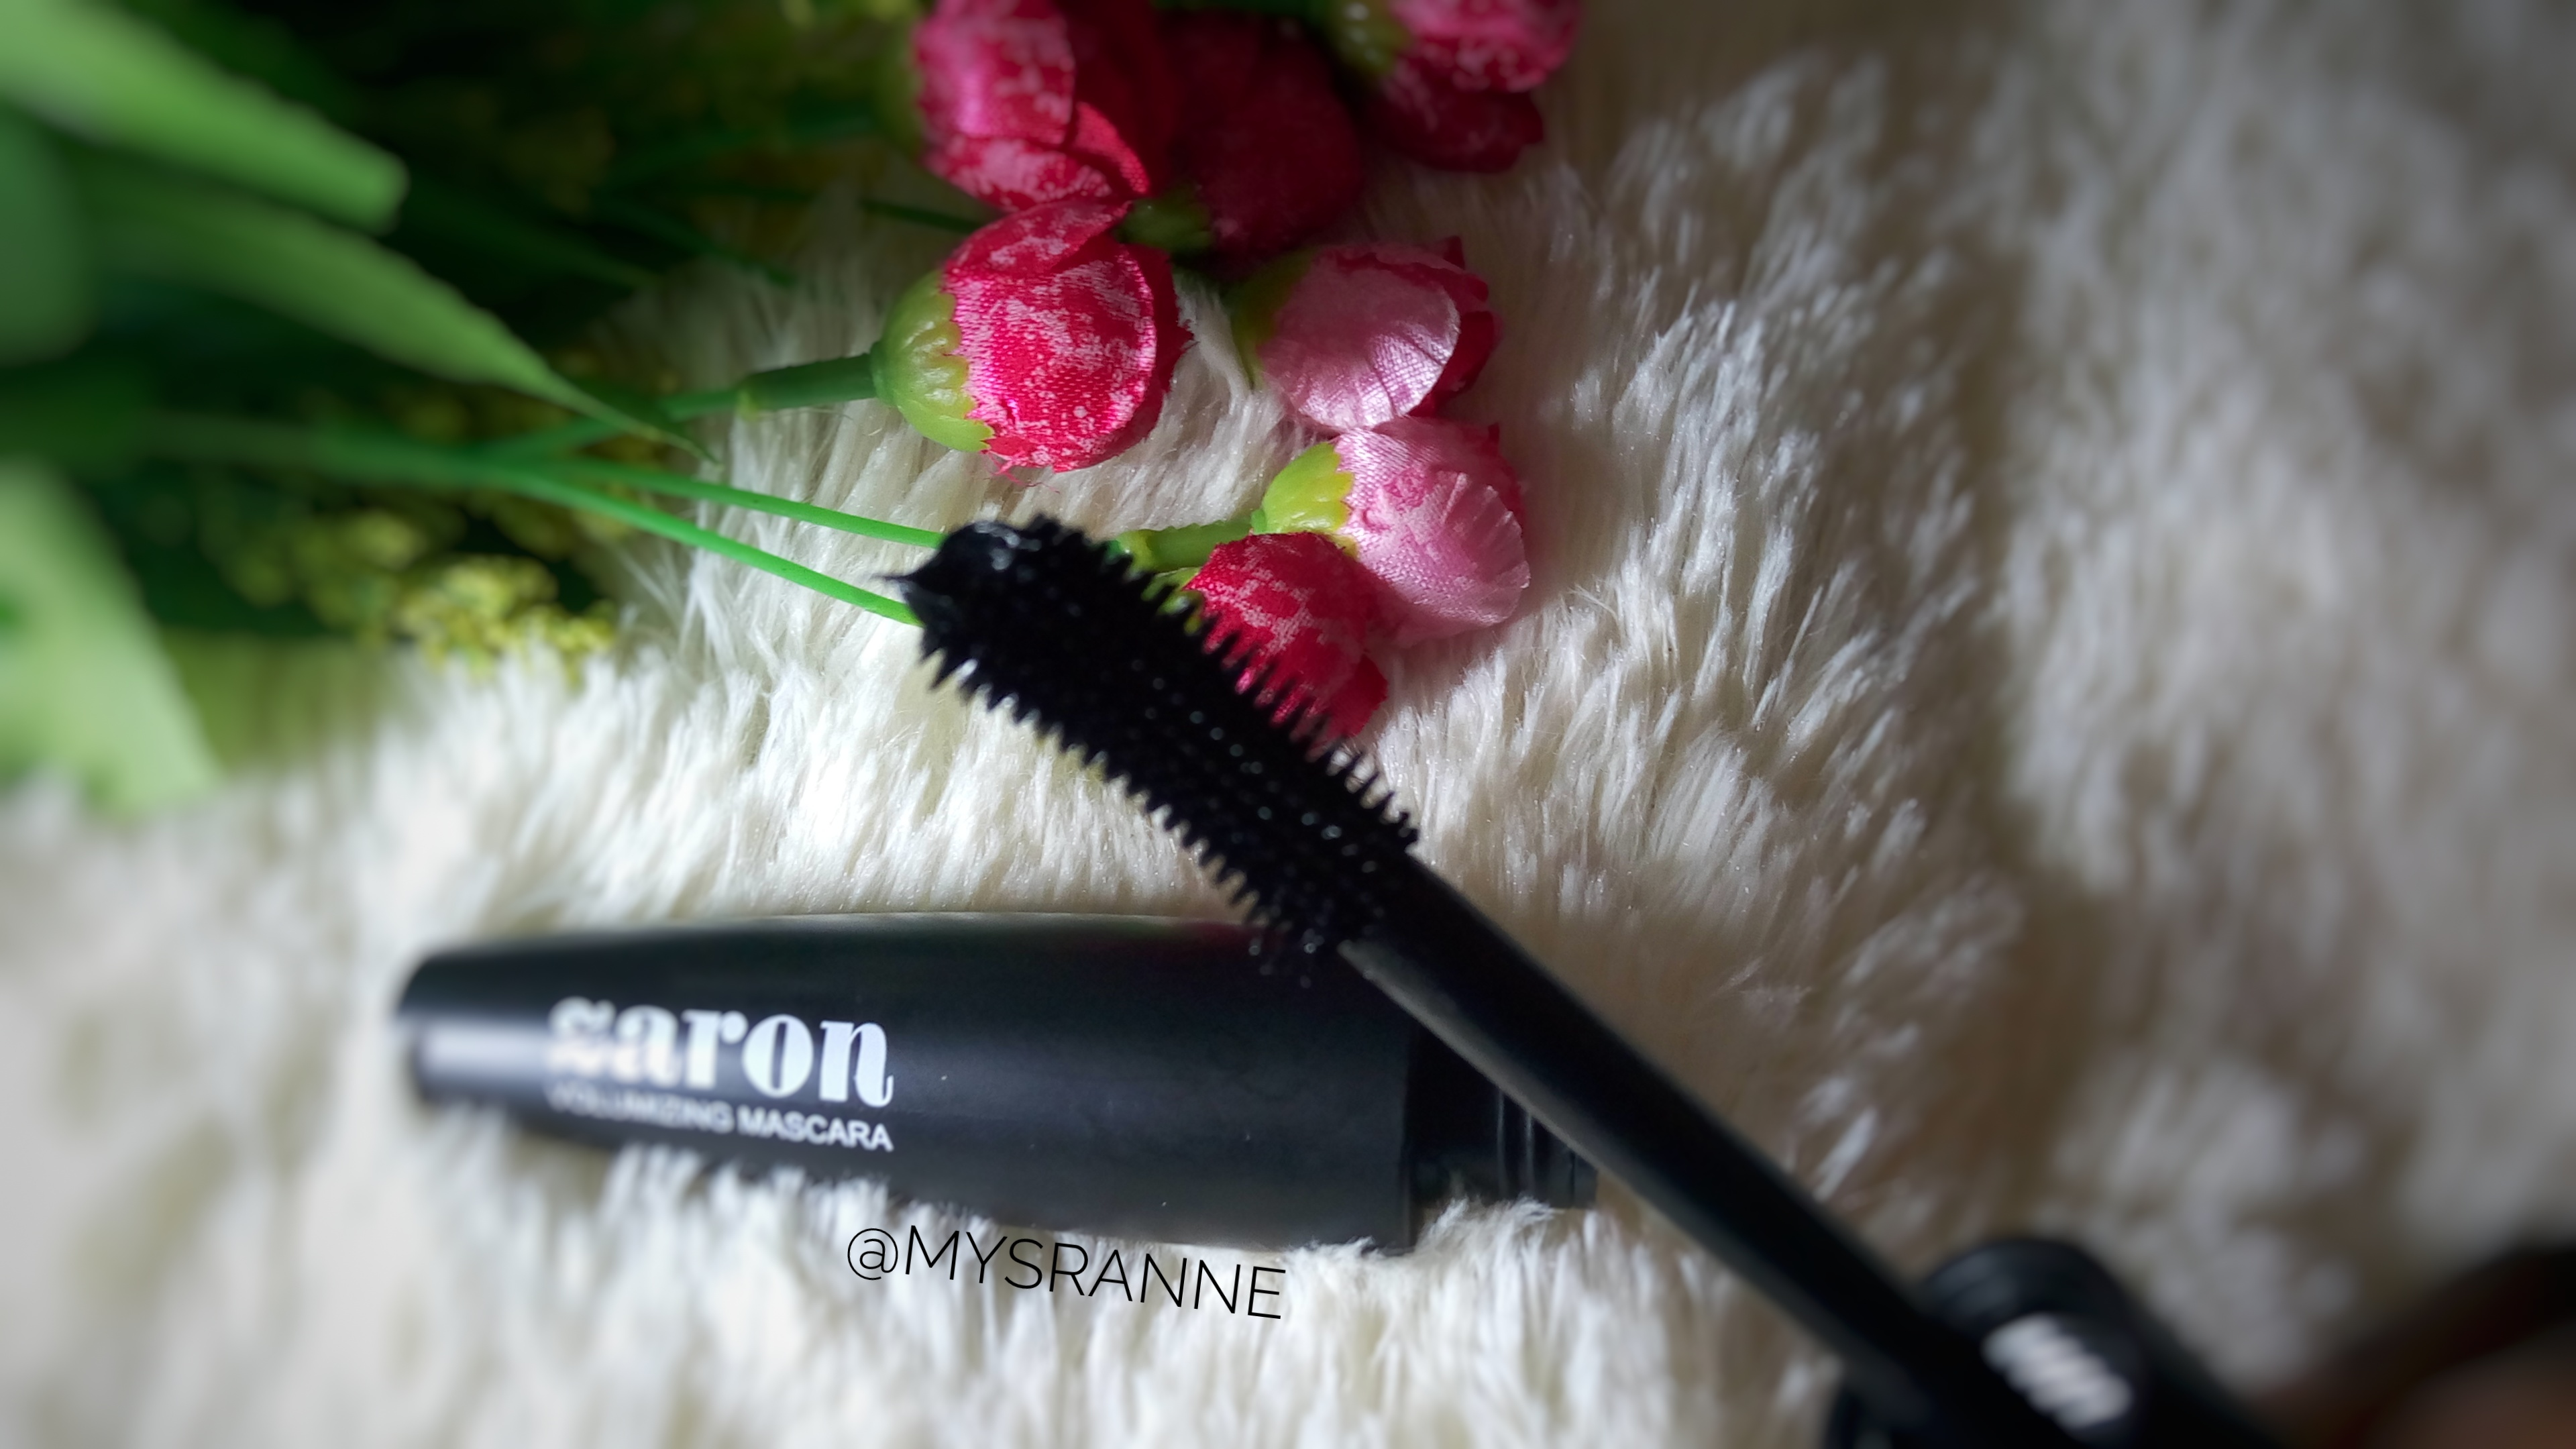 ZARON VOLUMIZING MASCARA (Review)